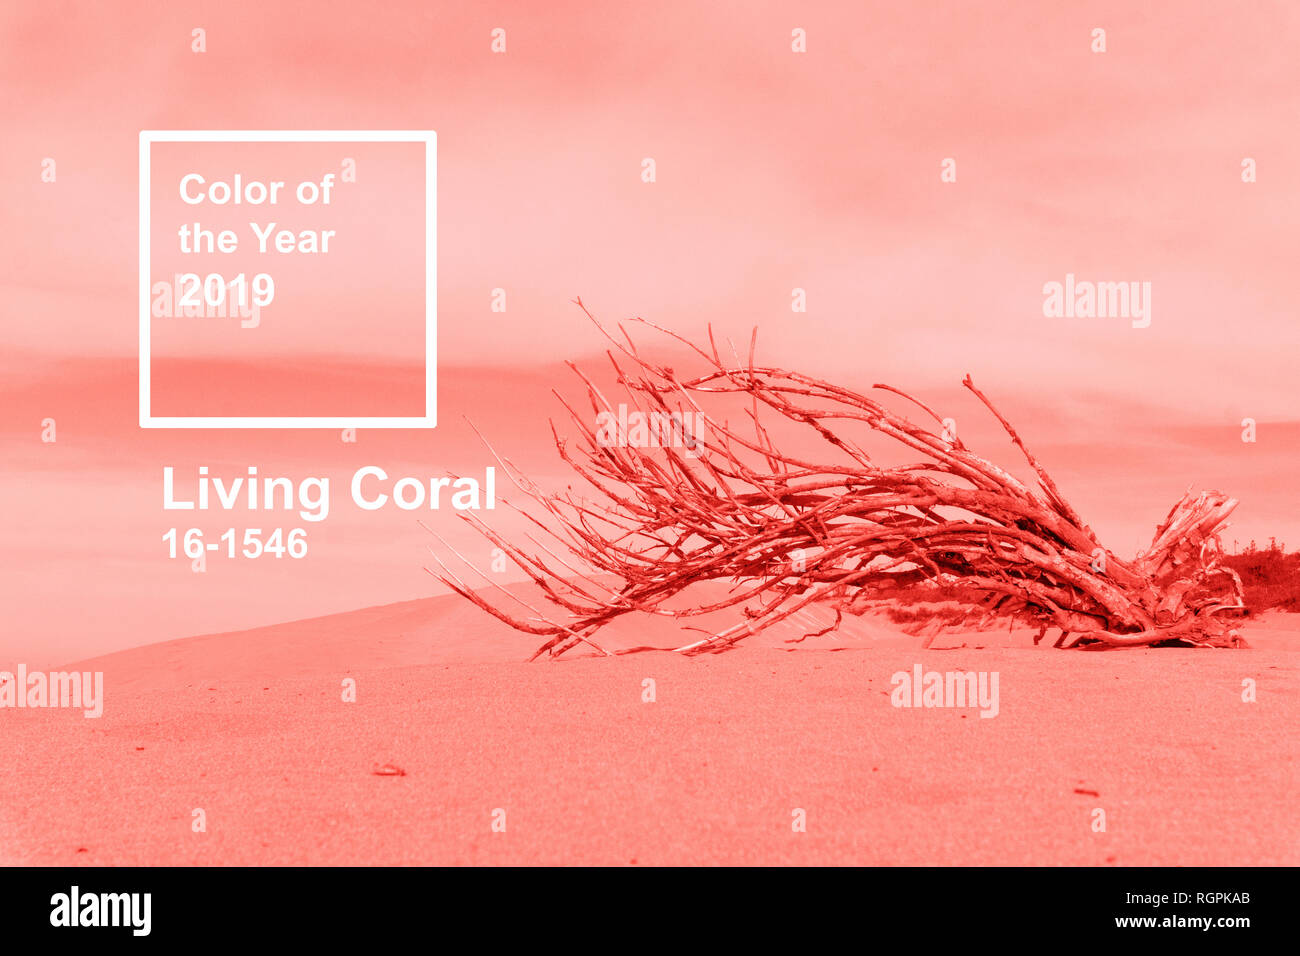 LIVING CORAL. Color of the year 2019 concept. Living coral 2019 paint texture. Pink background - Stock Image